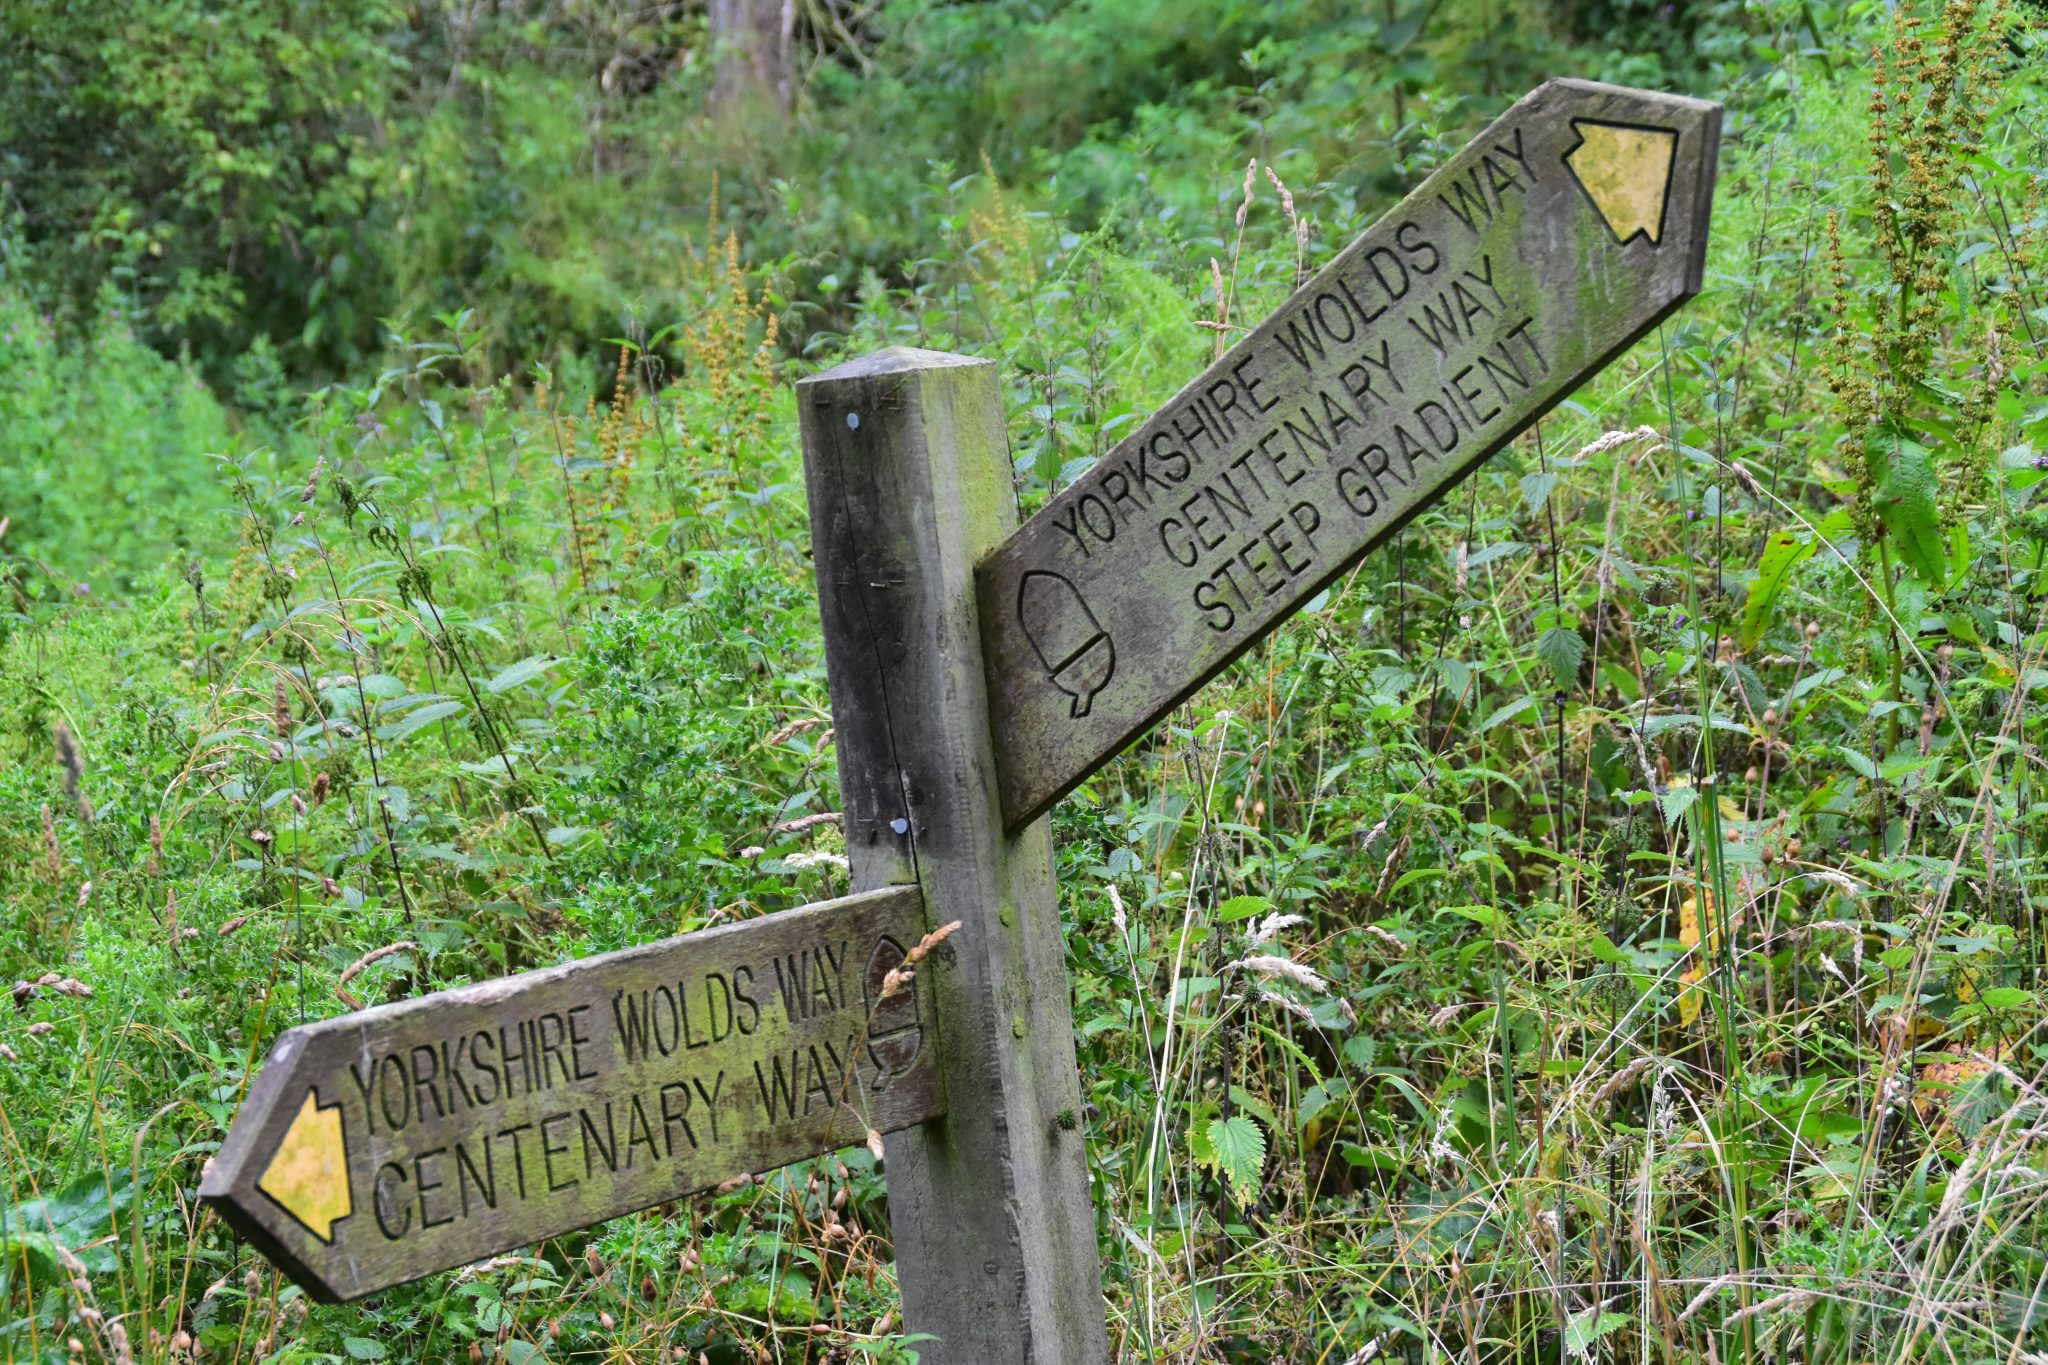 Wolds Way signpost pointing up steep hill